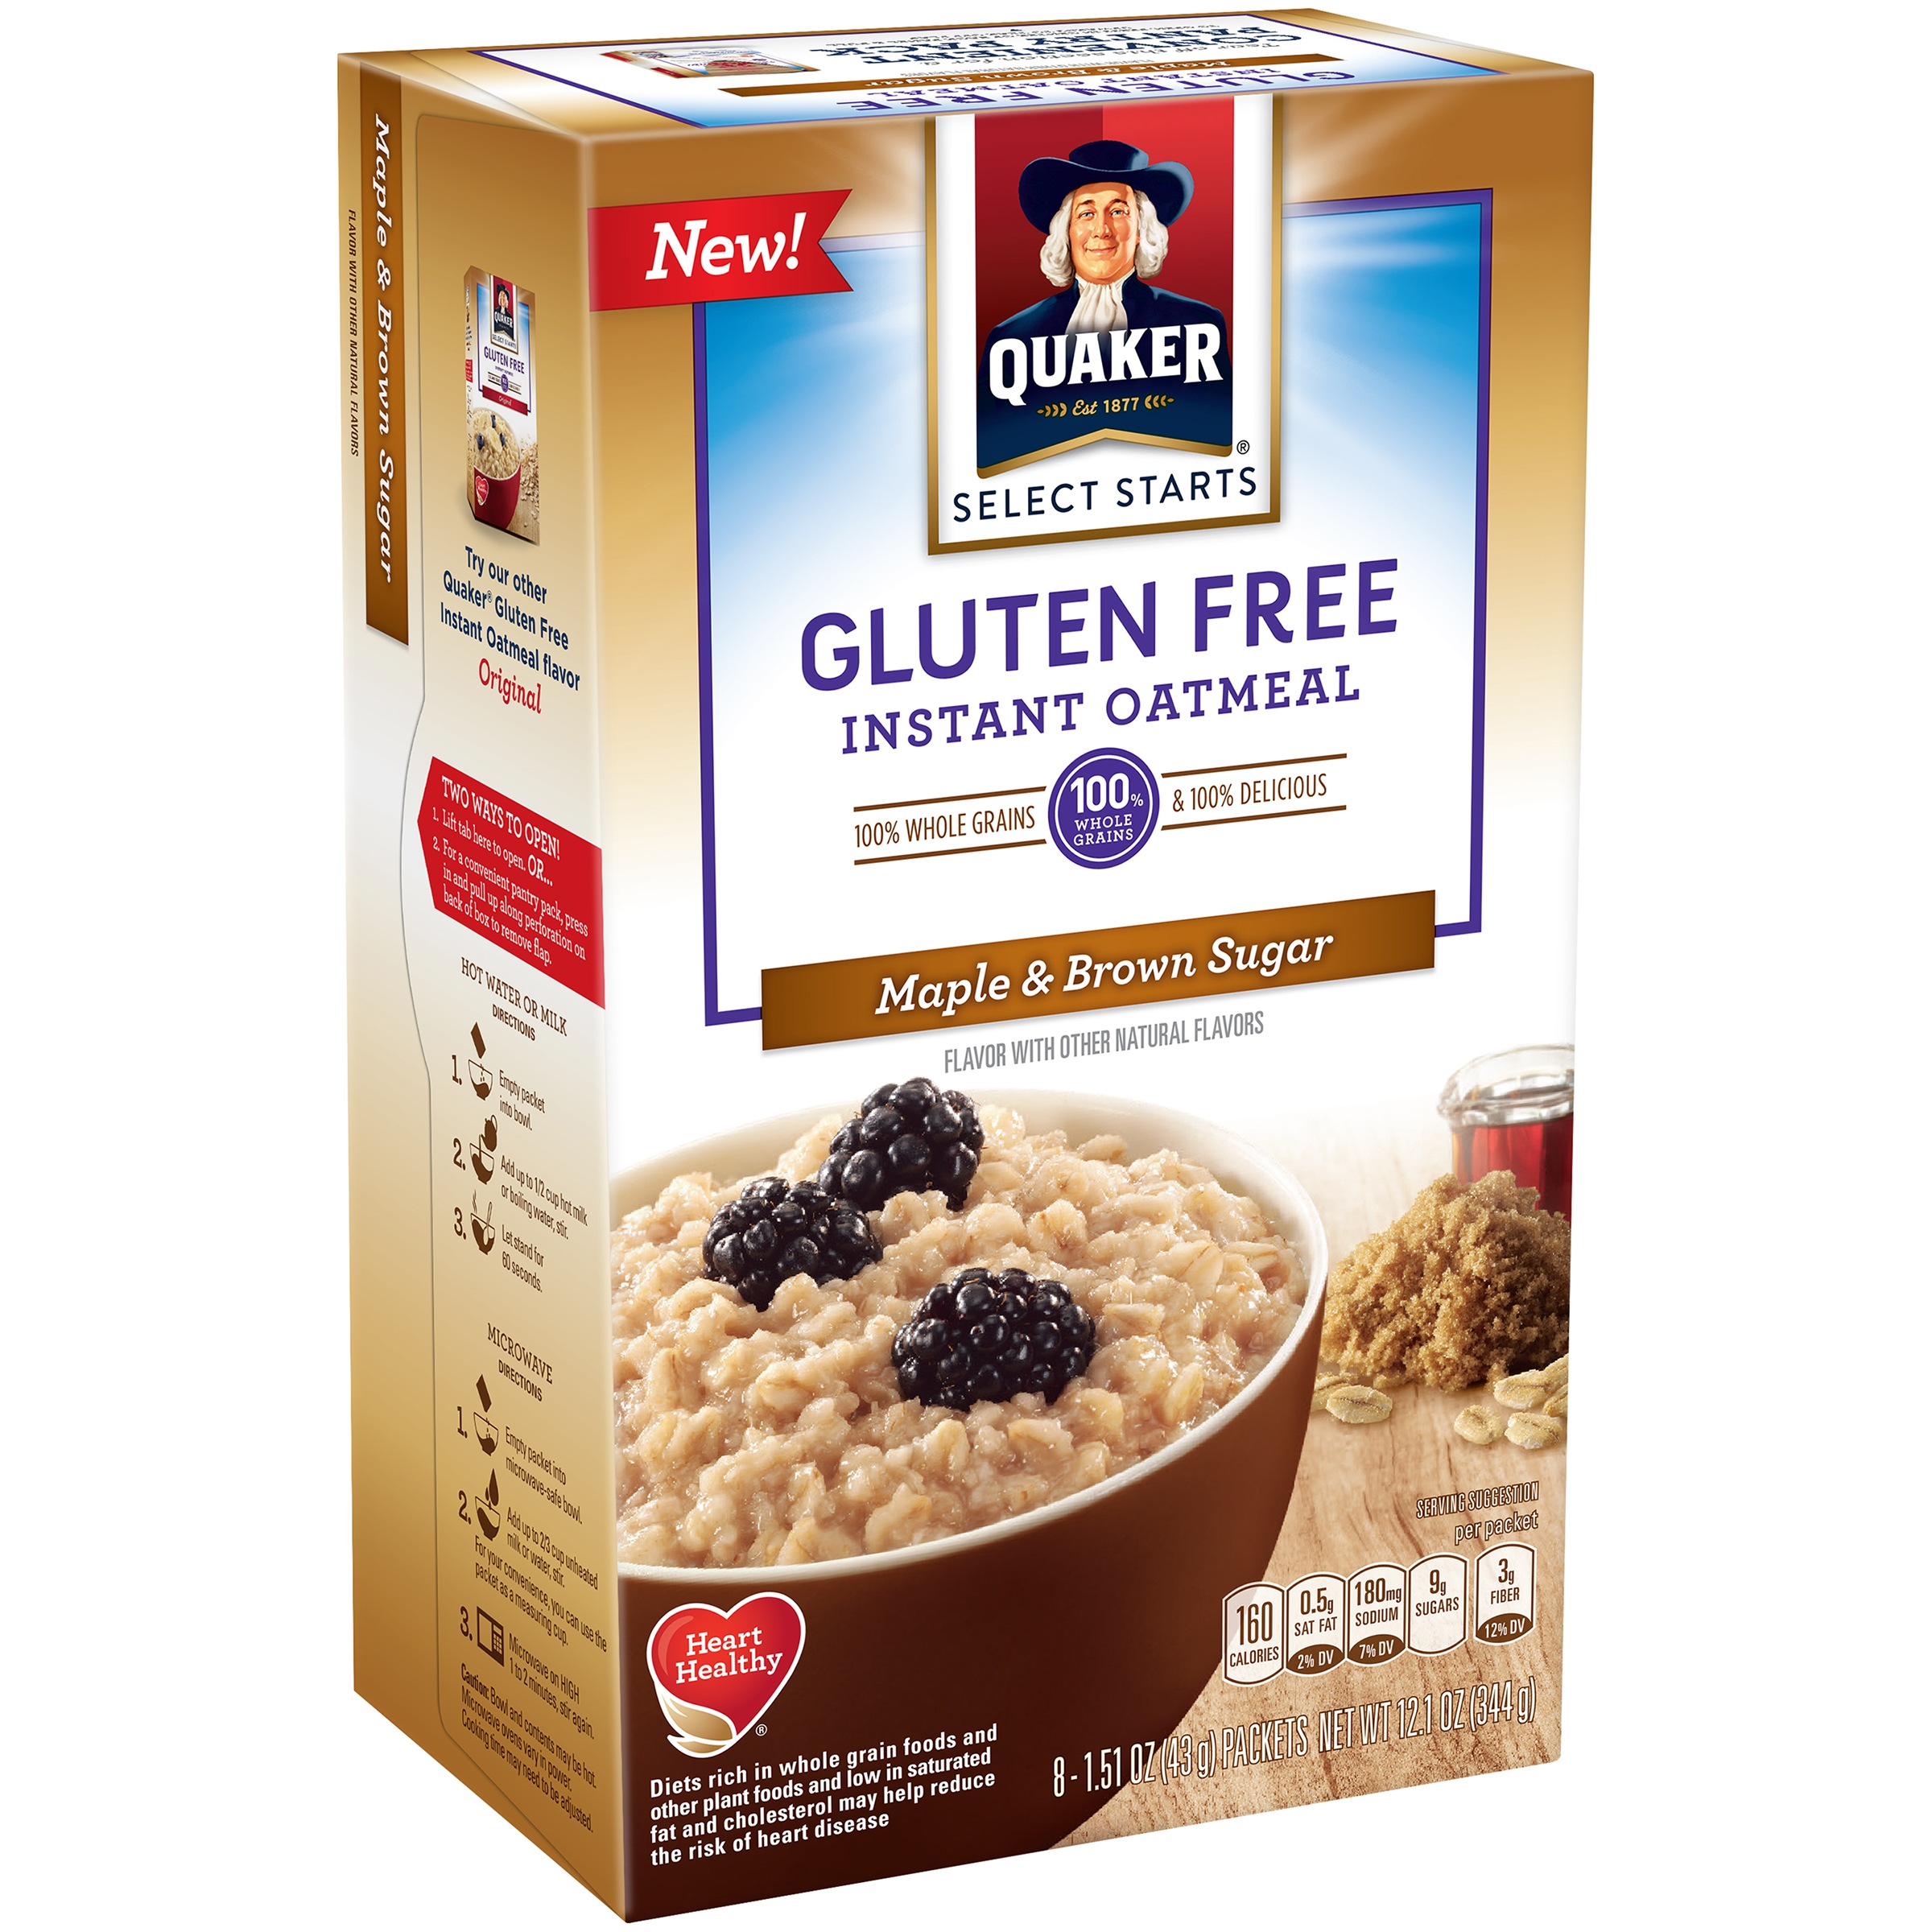 Quaker Instant Oatmeal, Gluten Free, Maple Brown Sugar, 8 Packets